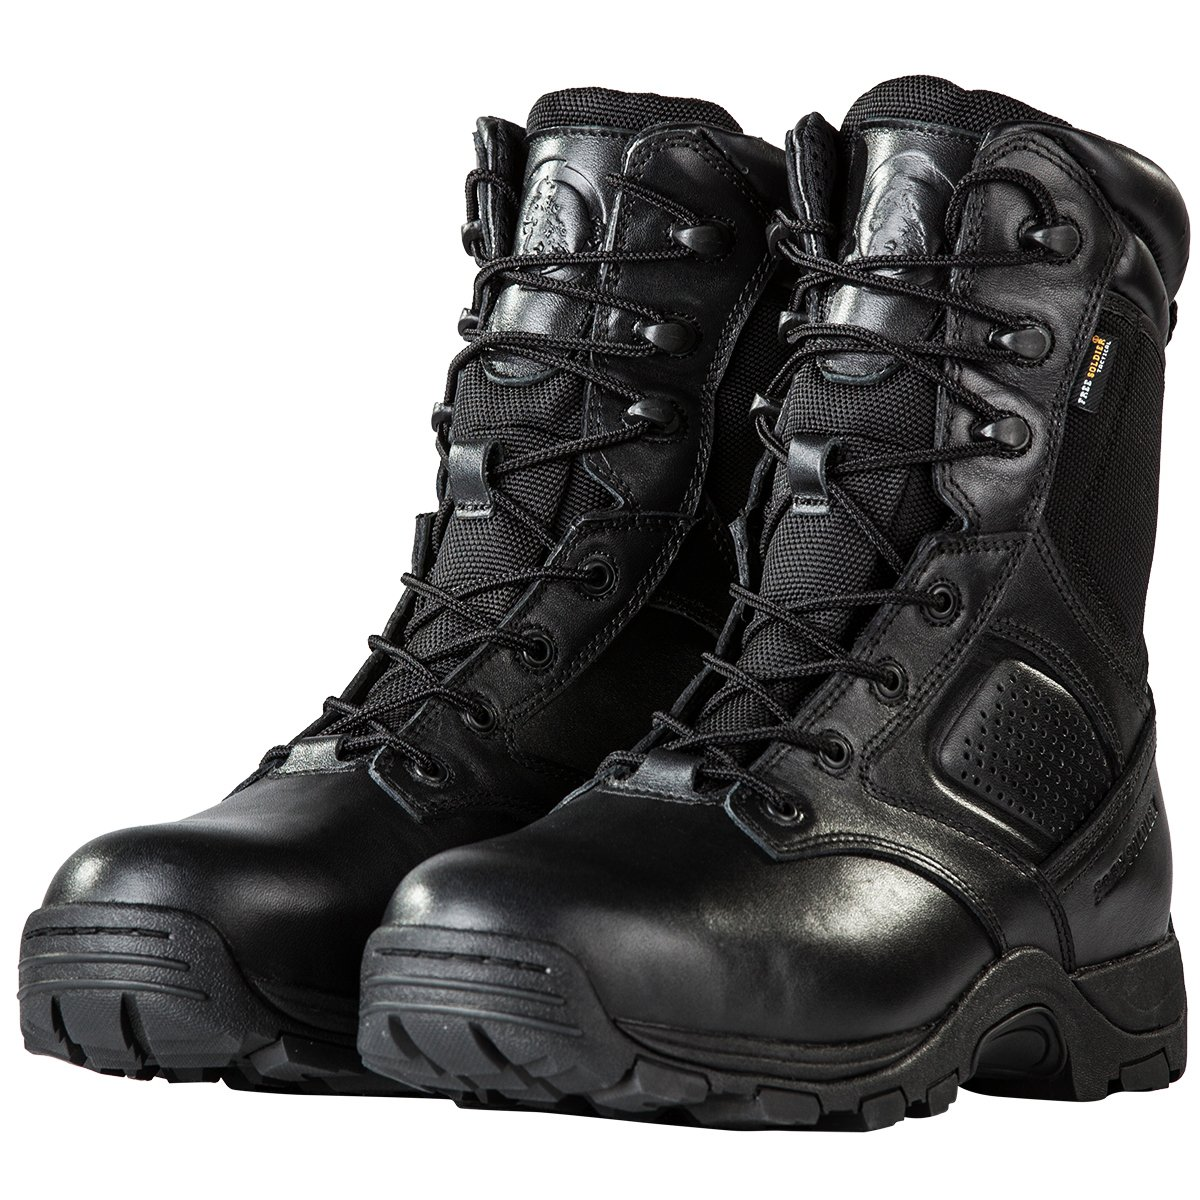 FREE SOLDIER Steel Toe Work Boots for Men Waterproof Insulated Composite Boots Tactical Combat Boots(Black 10.5)